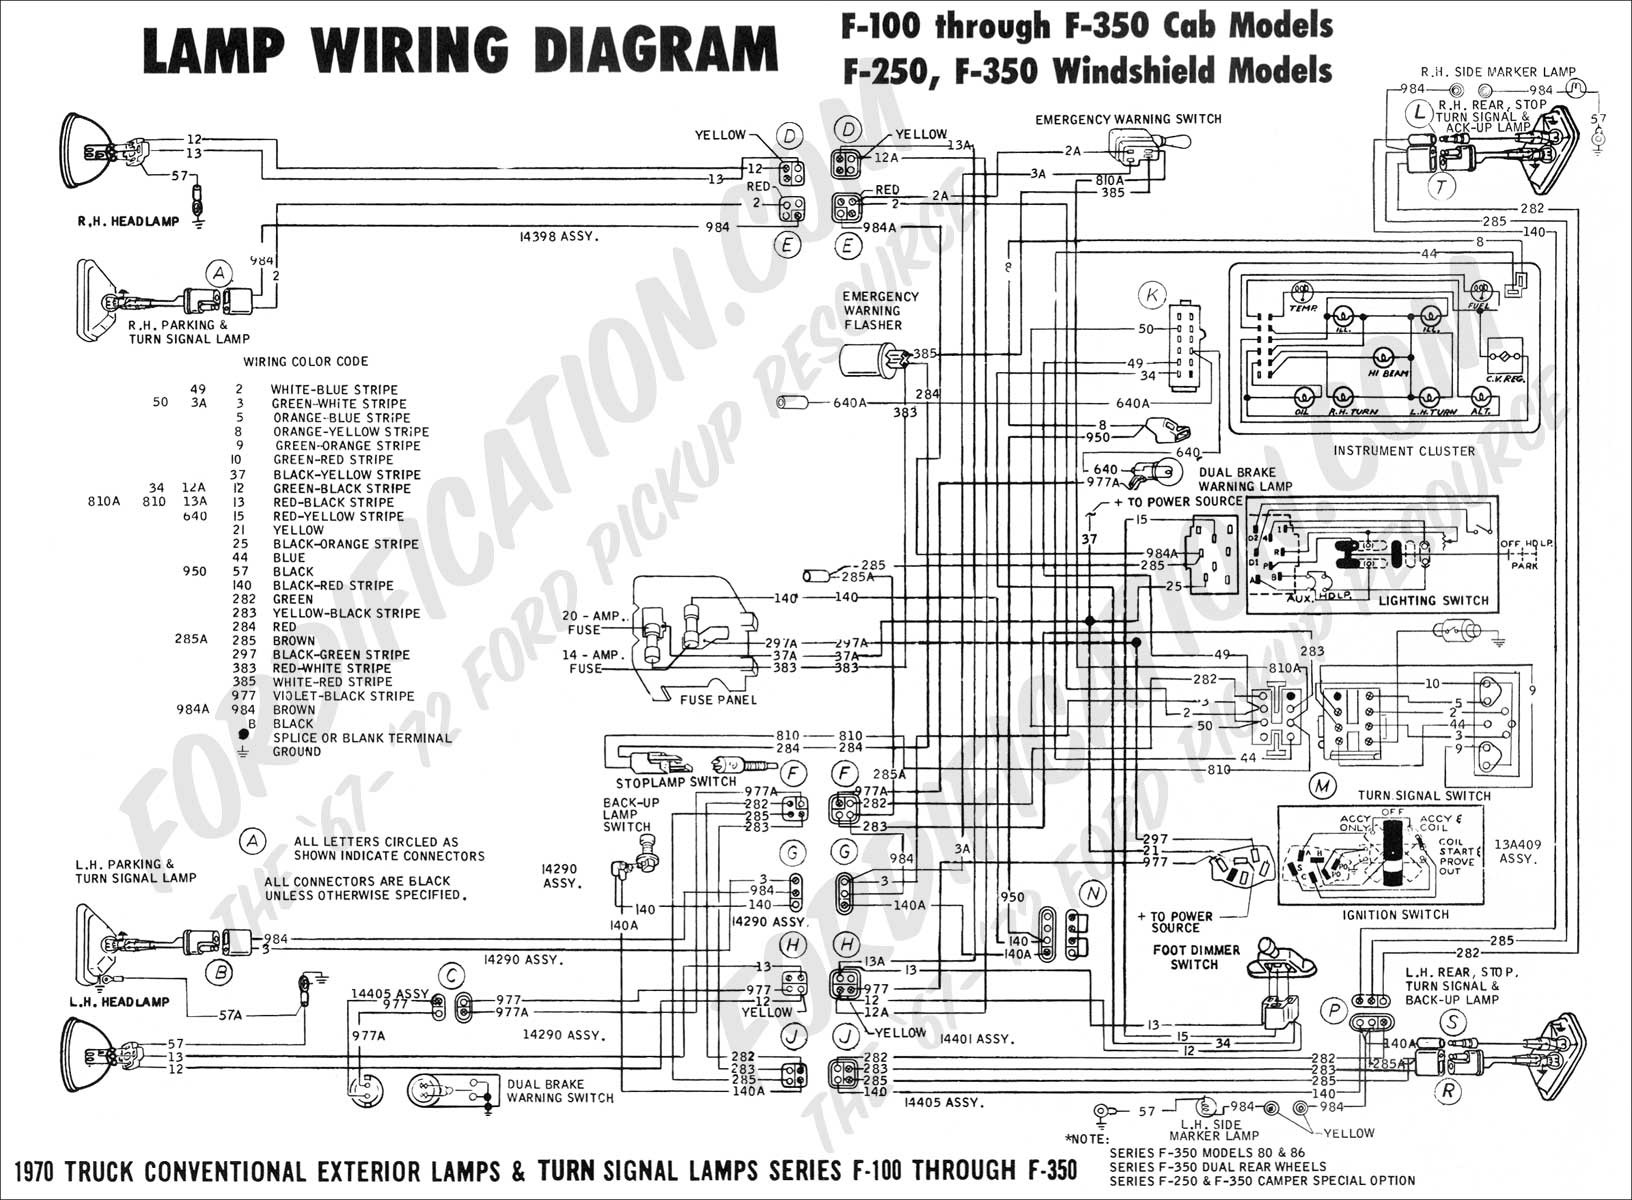 1956 Ford Truck Wiring Trusted Diagrams Dodge Diagram Alternator Get Free Image About Parts